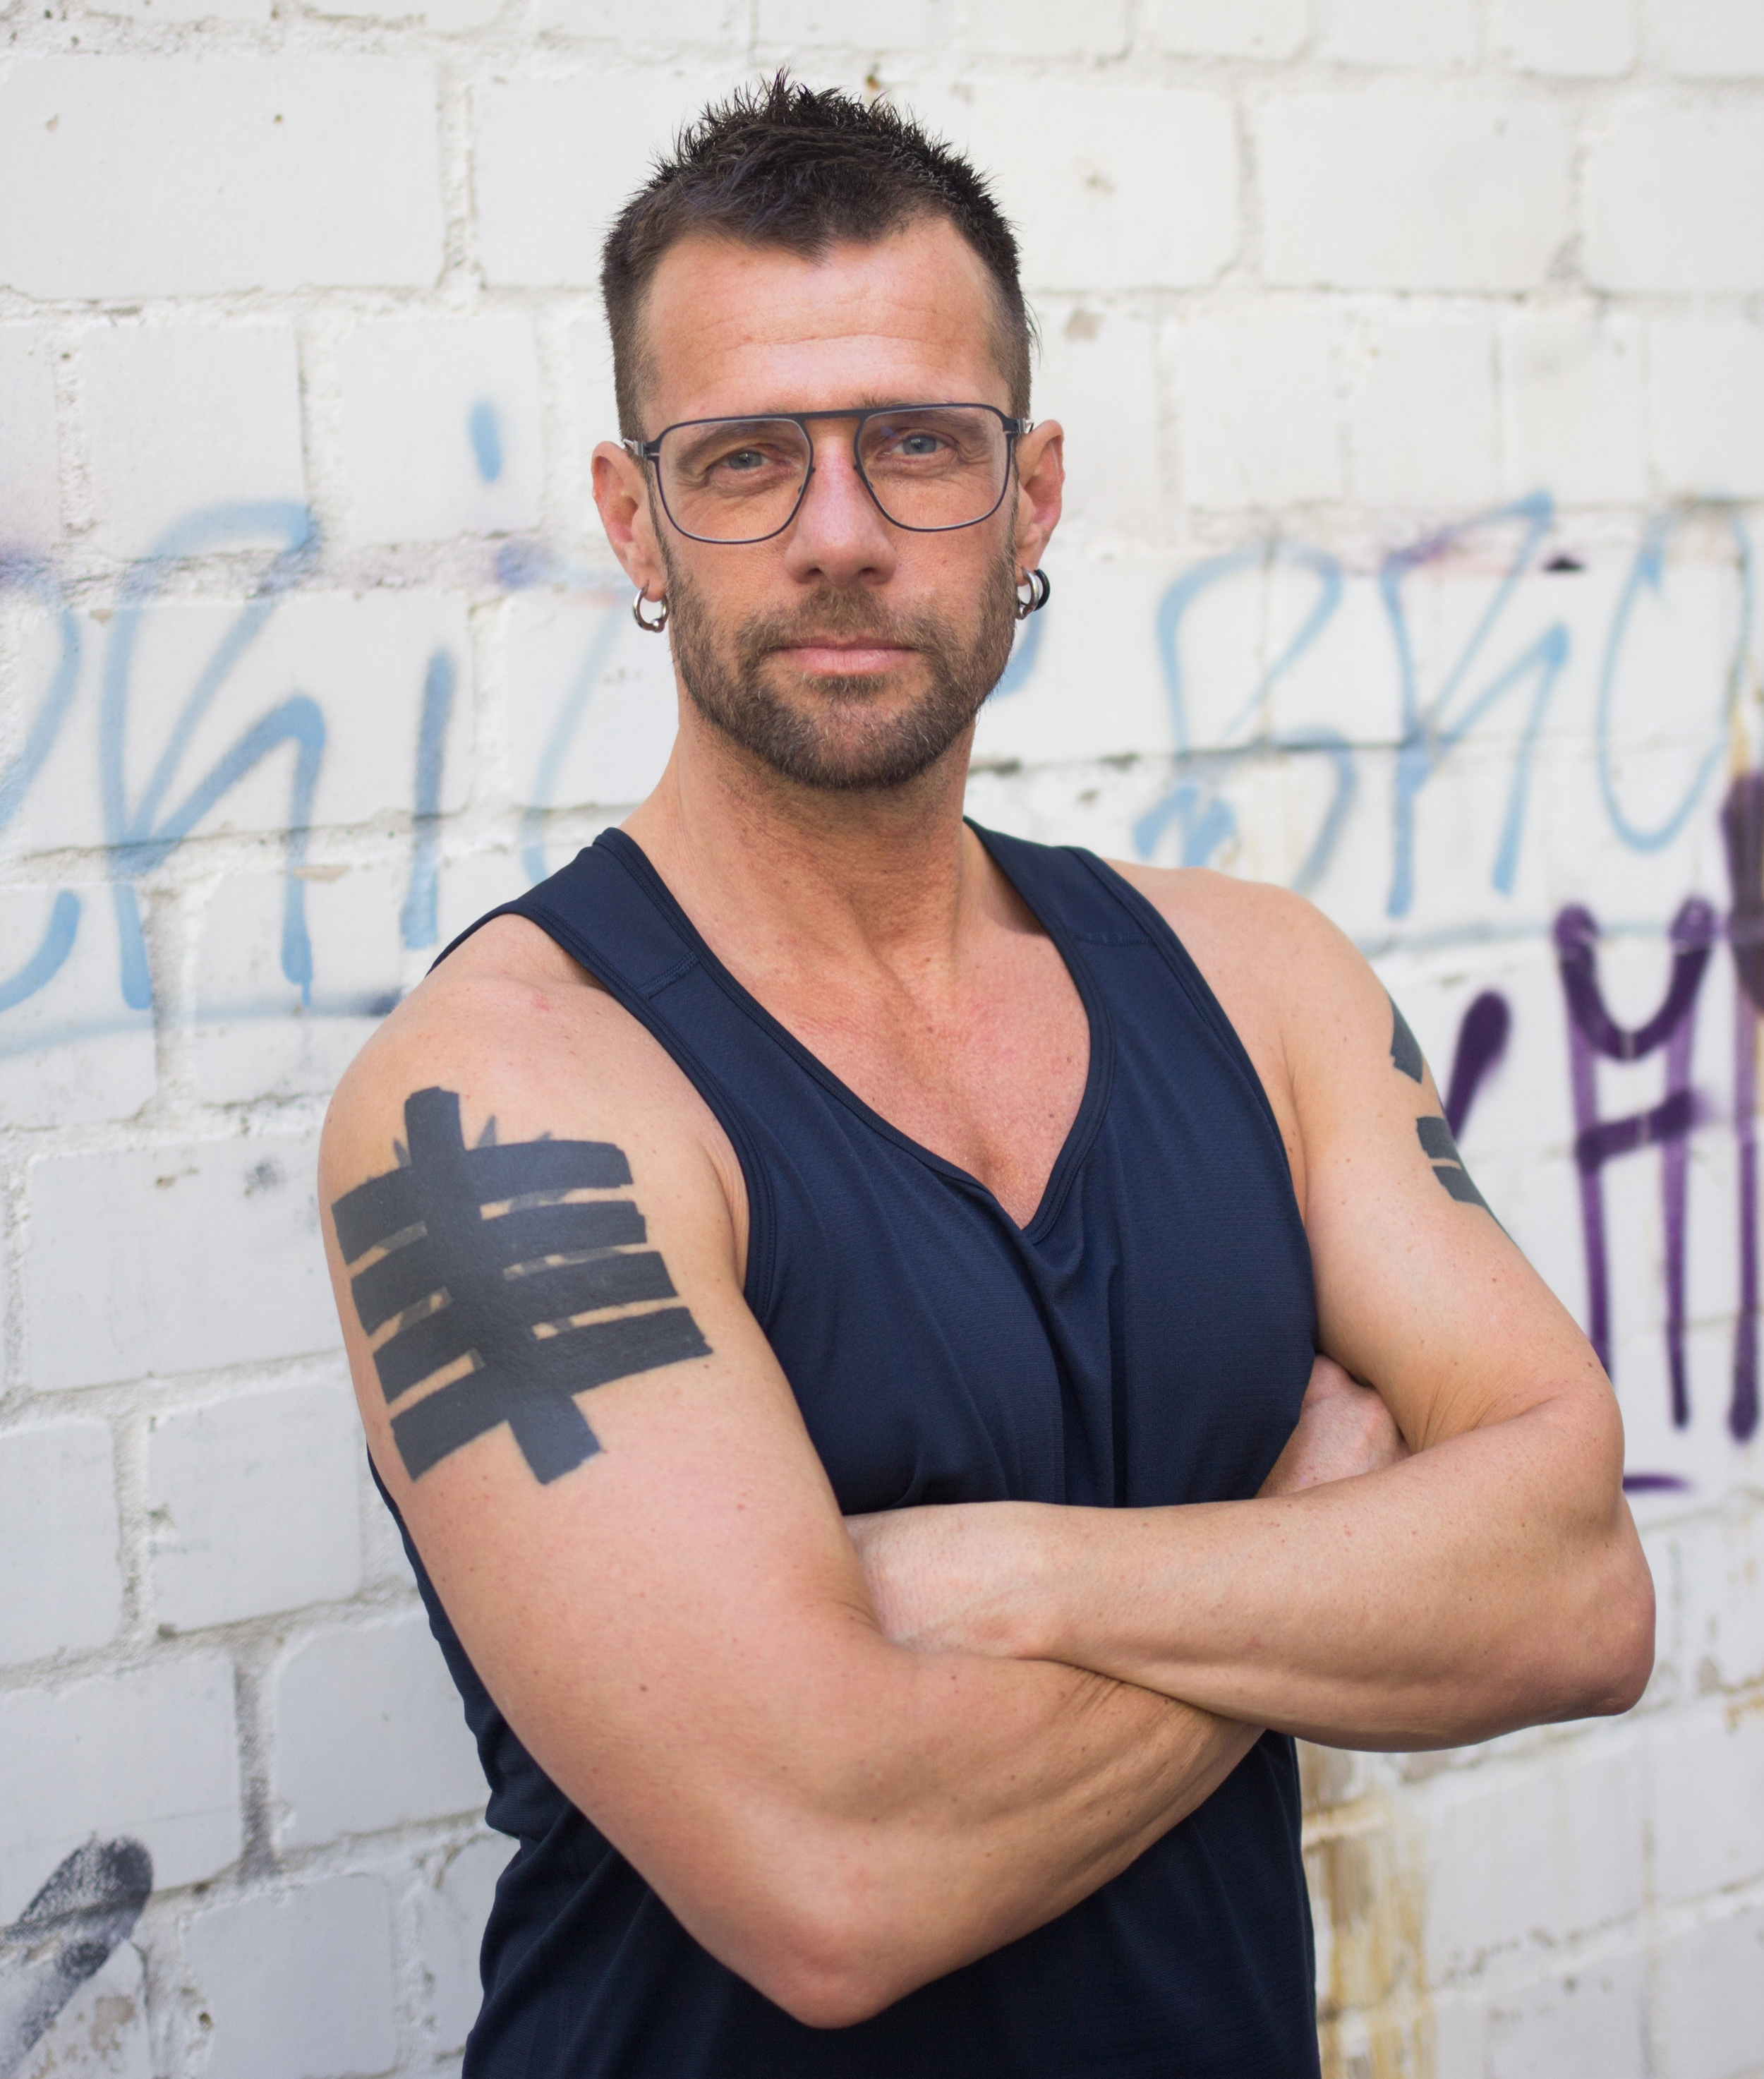 BREATHE DEEP WITH BEN… - Ben is a Swiss born actor and yogi who has been teaching yoga for the past 12 years, from powerful Flow classes to more introverted Yin yoga. Read on to find out his favourite poses and places in Berlin!